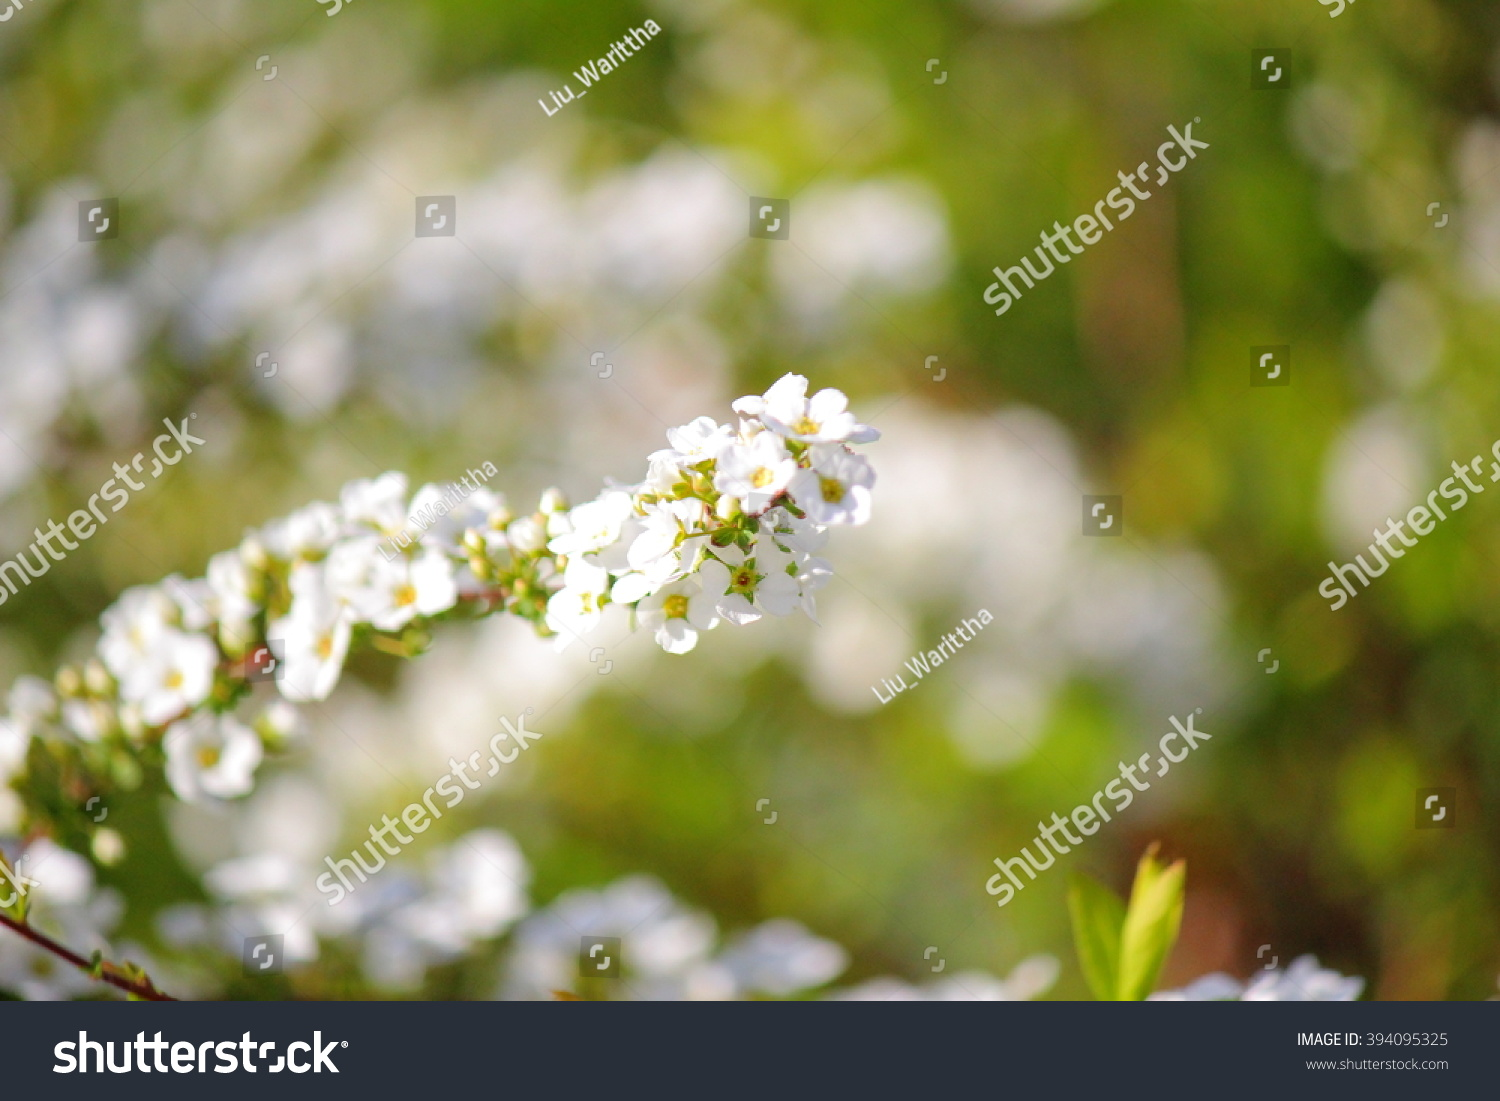 Spiraea Arguta Small White Flowers Blooming Stock Photo Edit Now